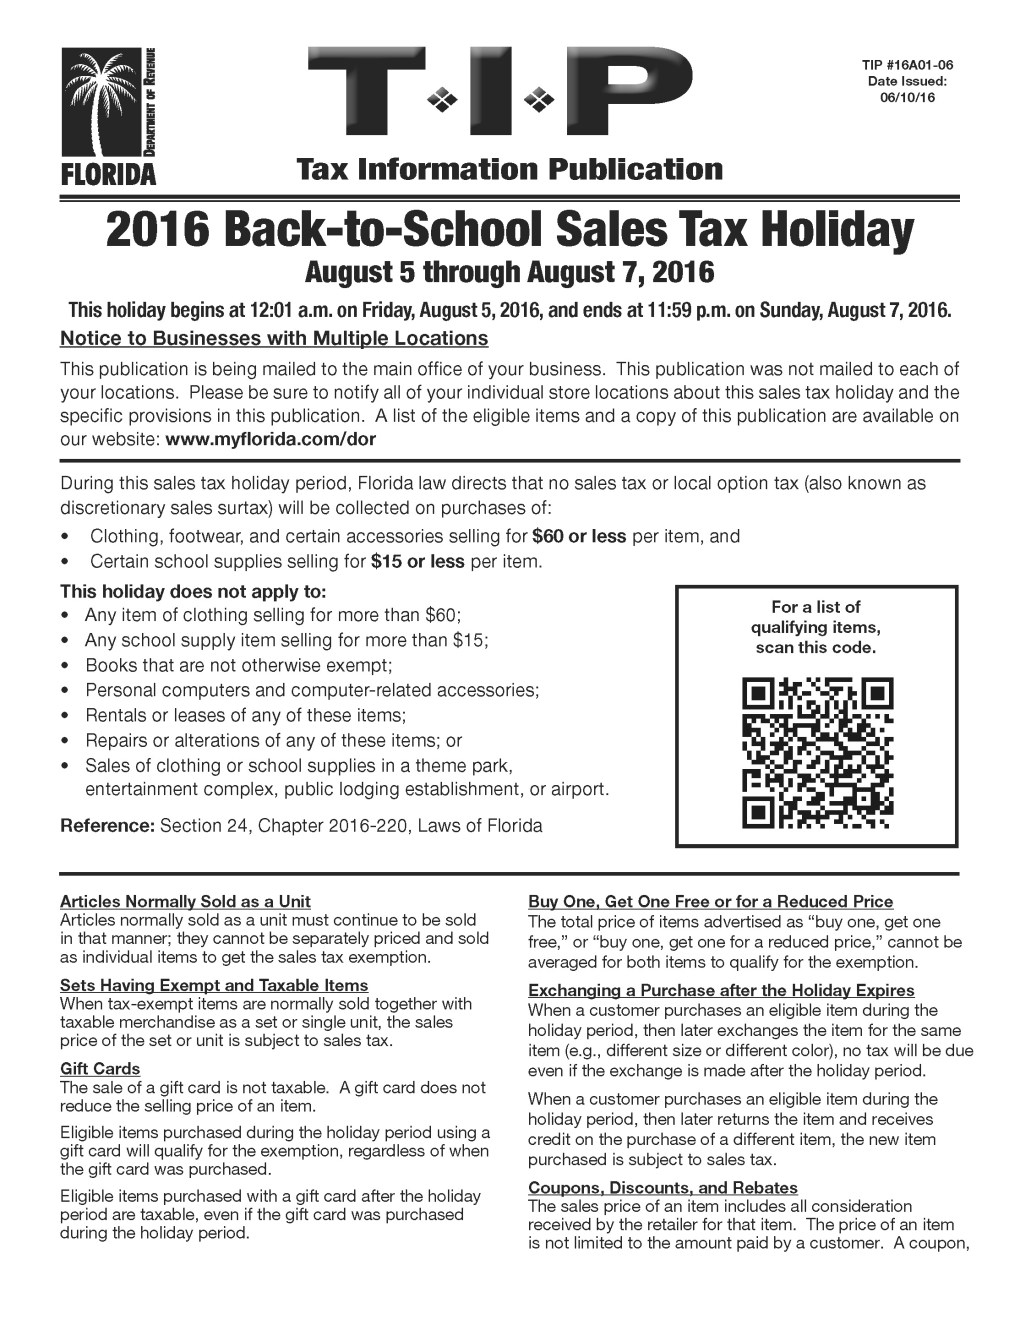 2016 tax exempt holiday_Page_1